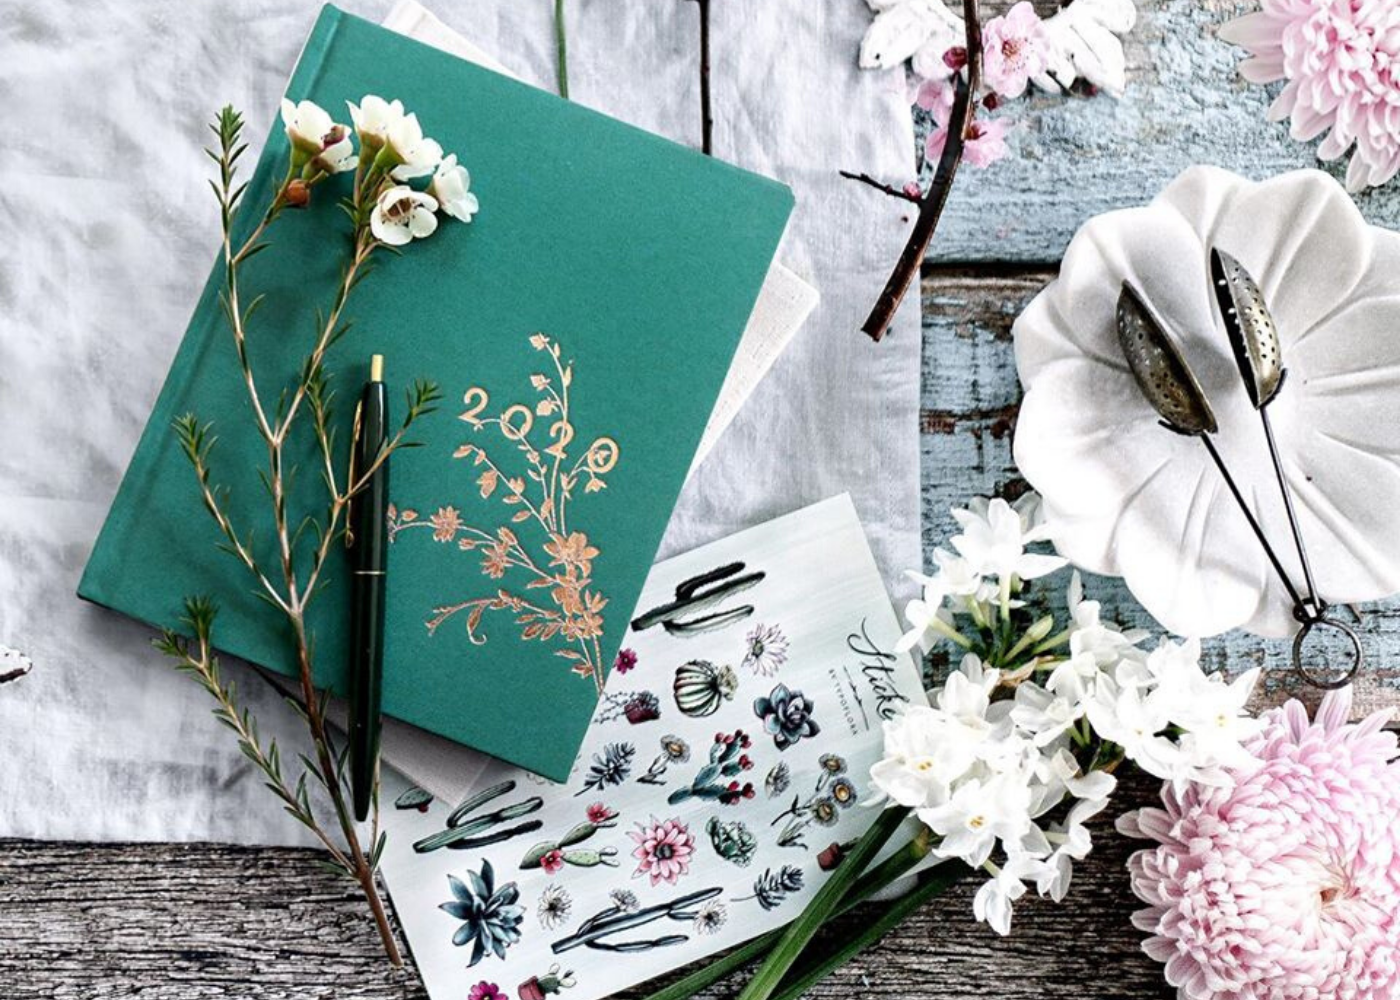 Pencil it in: Ring in 2020 with the coolest diaries, planners and journals